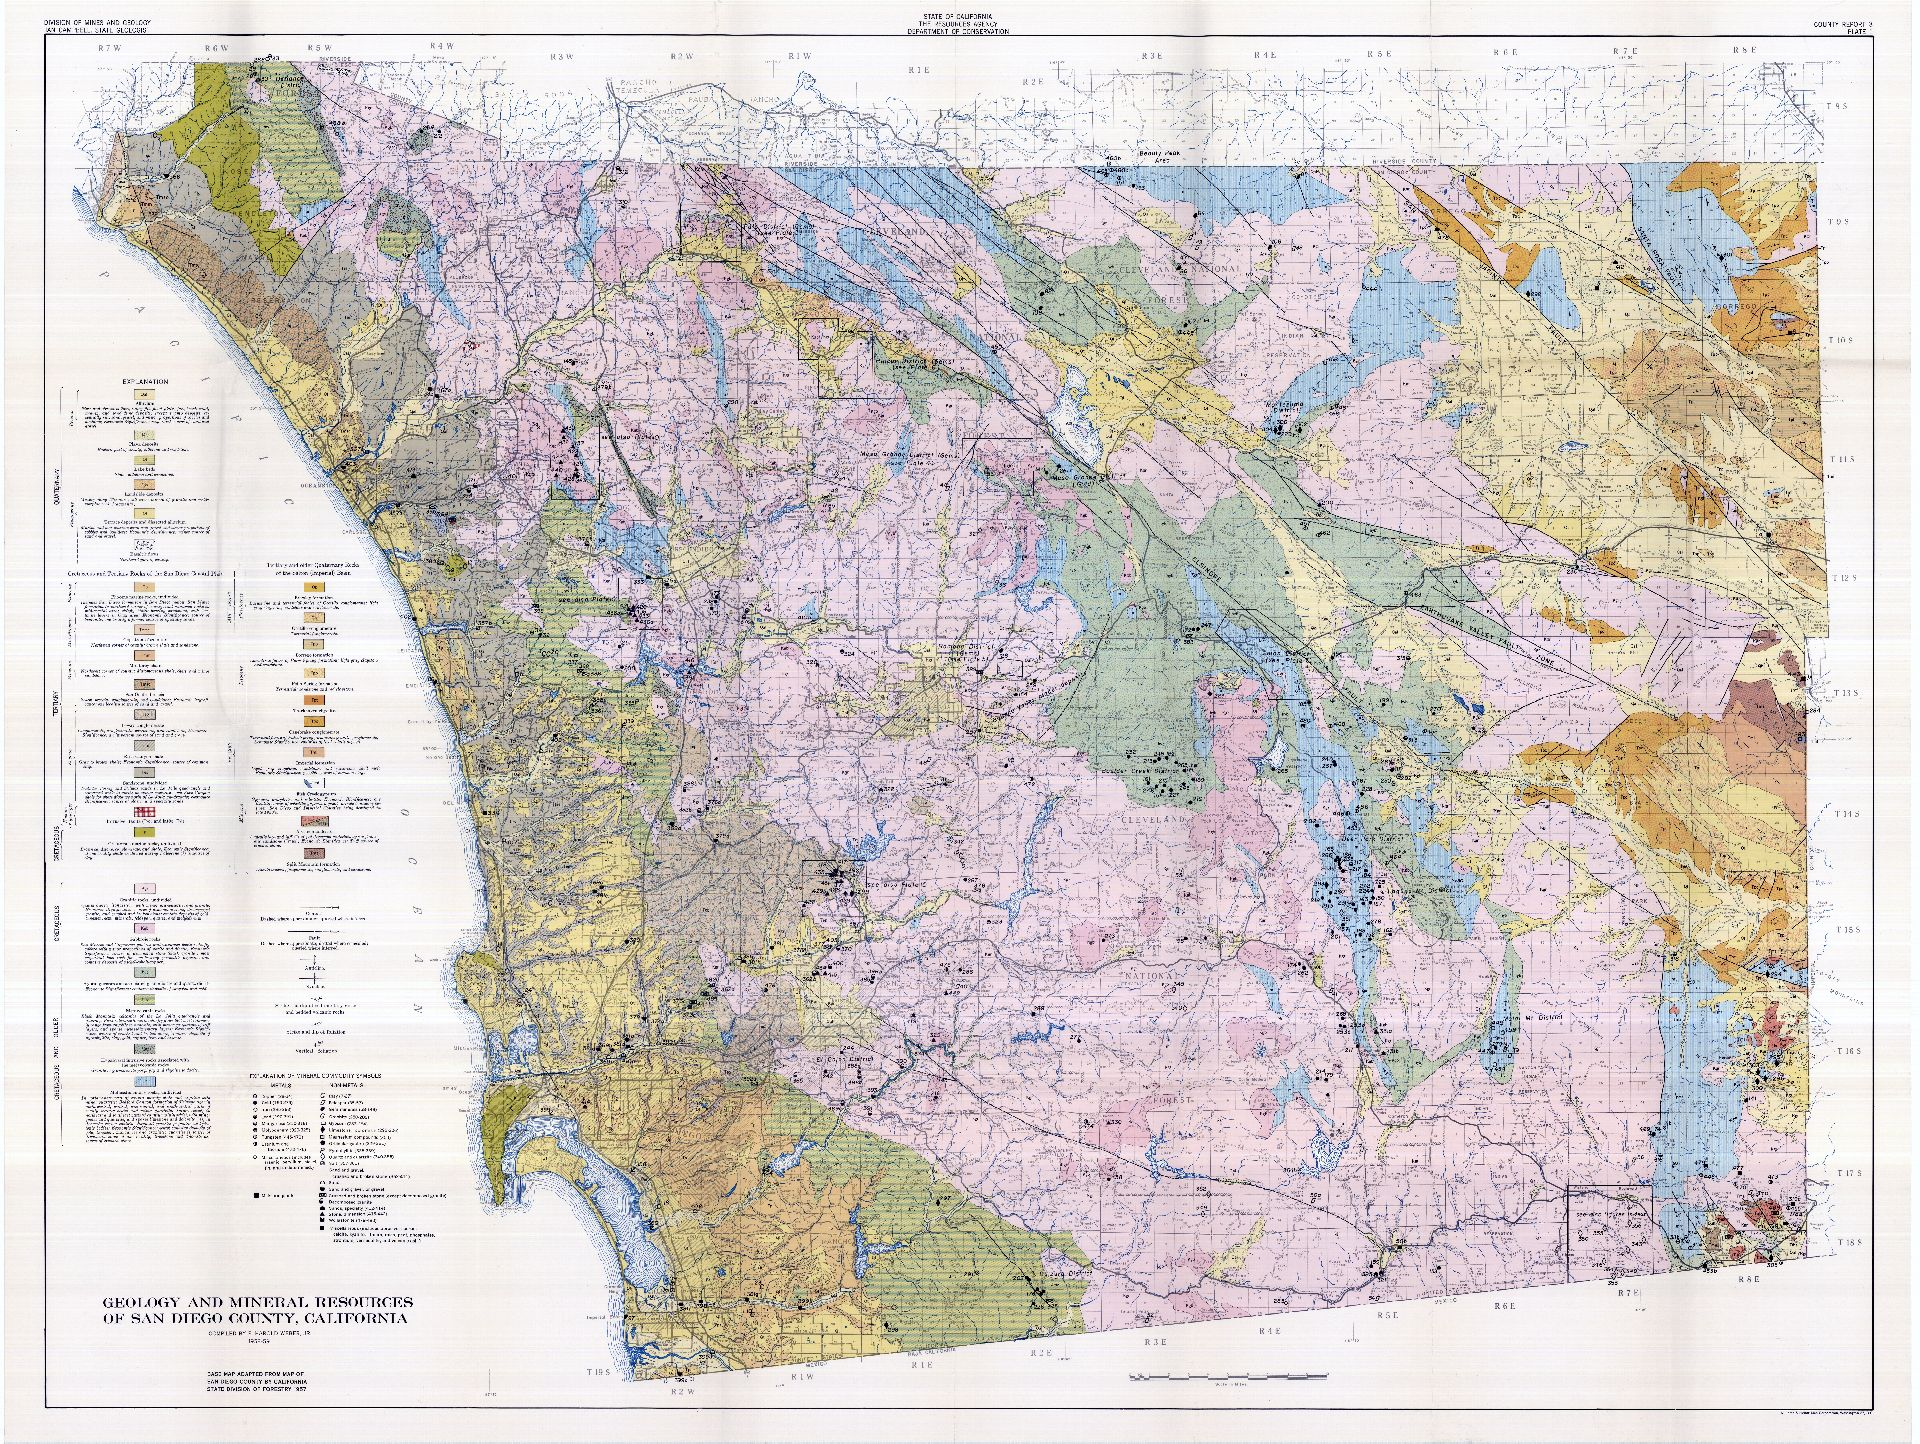 SDAG - Online Historical Geological Maps, San Diego County